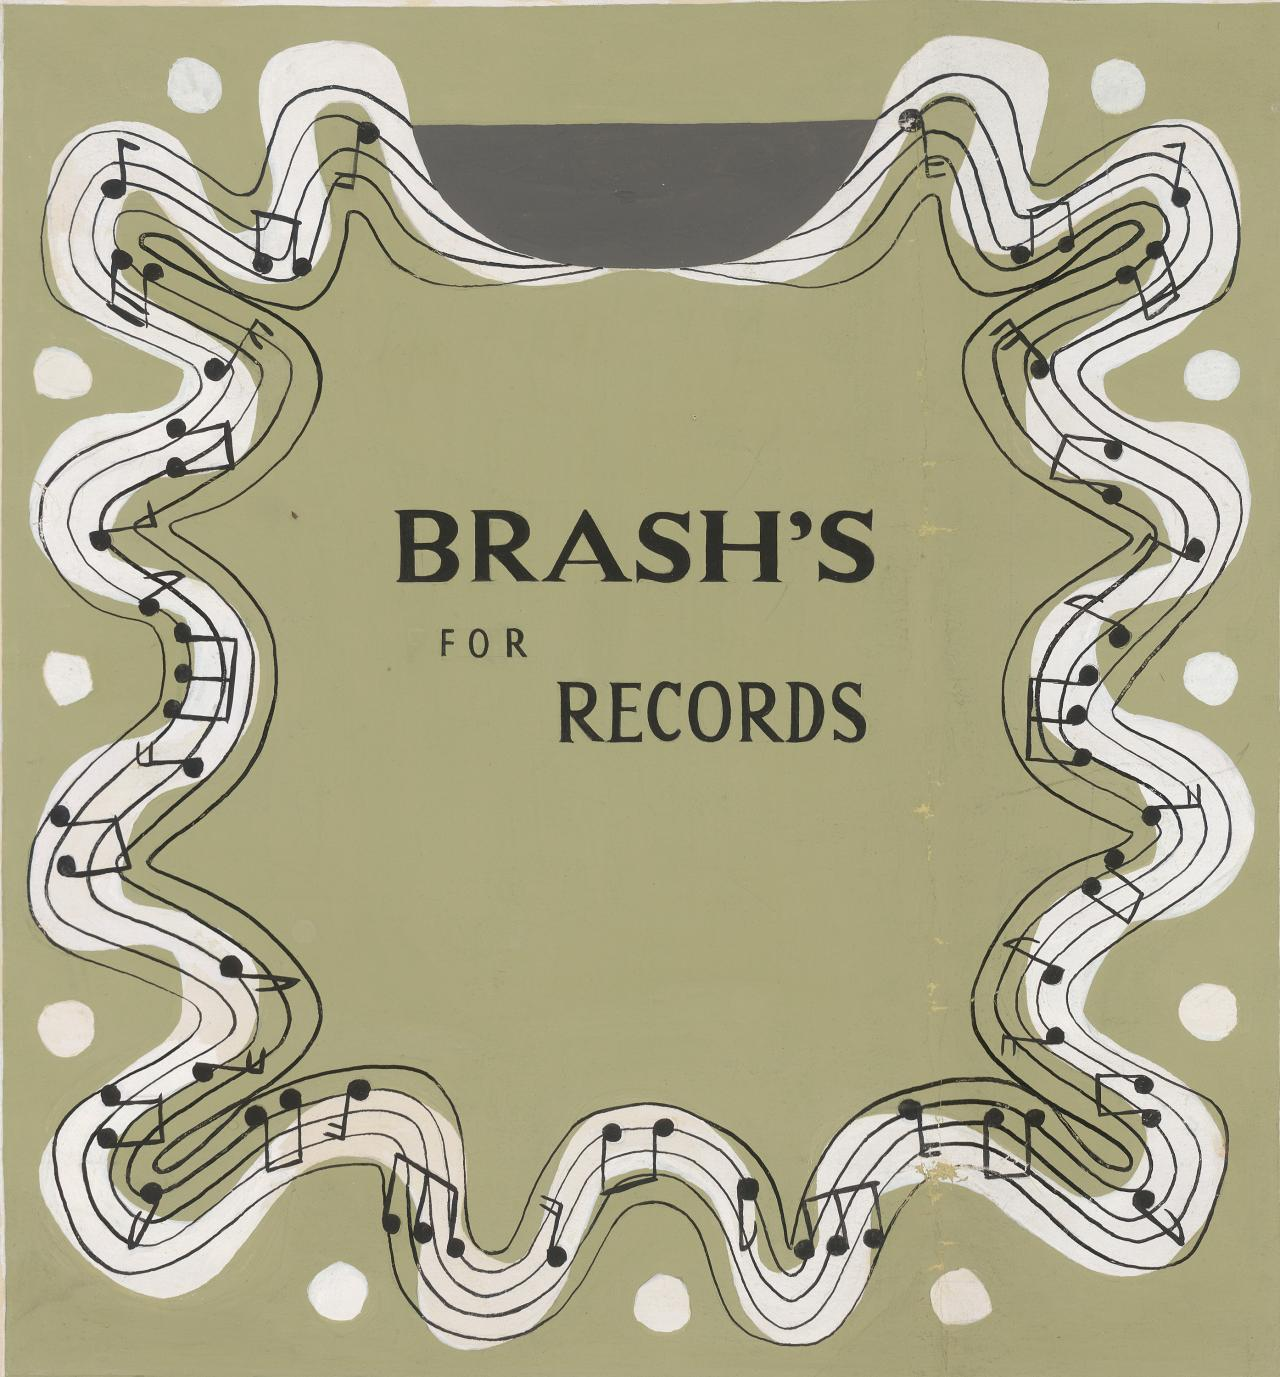 Design for record cover Brash's for records